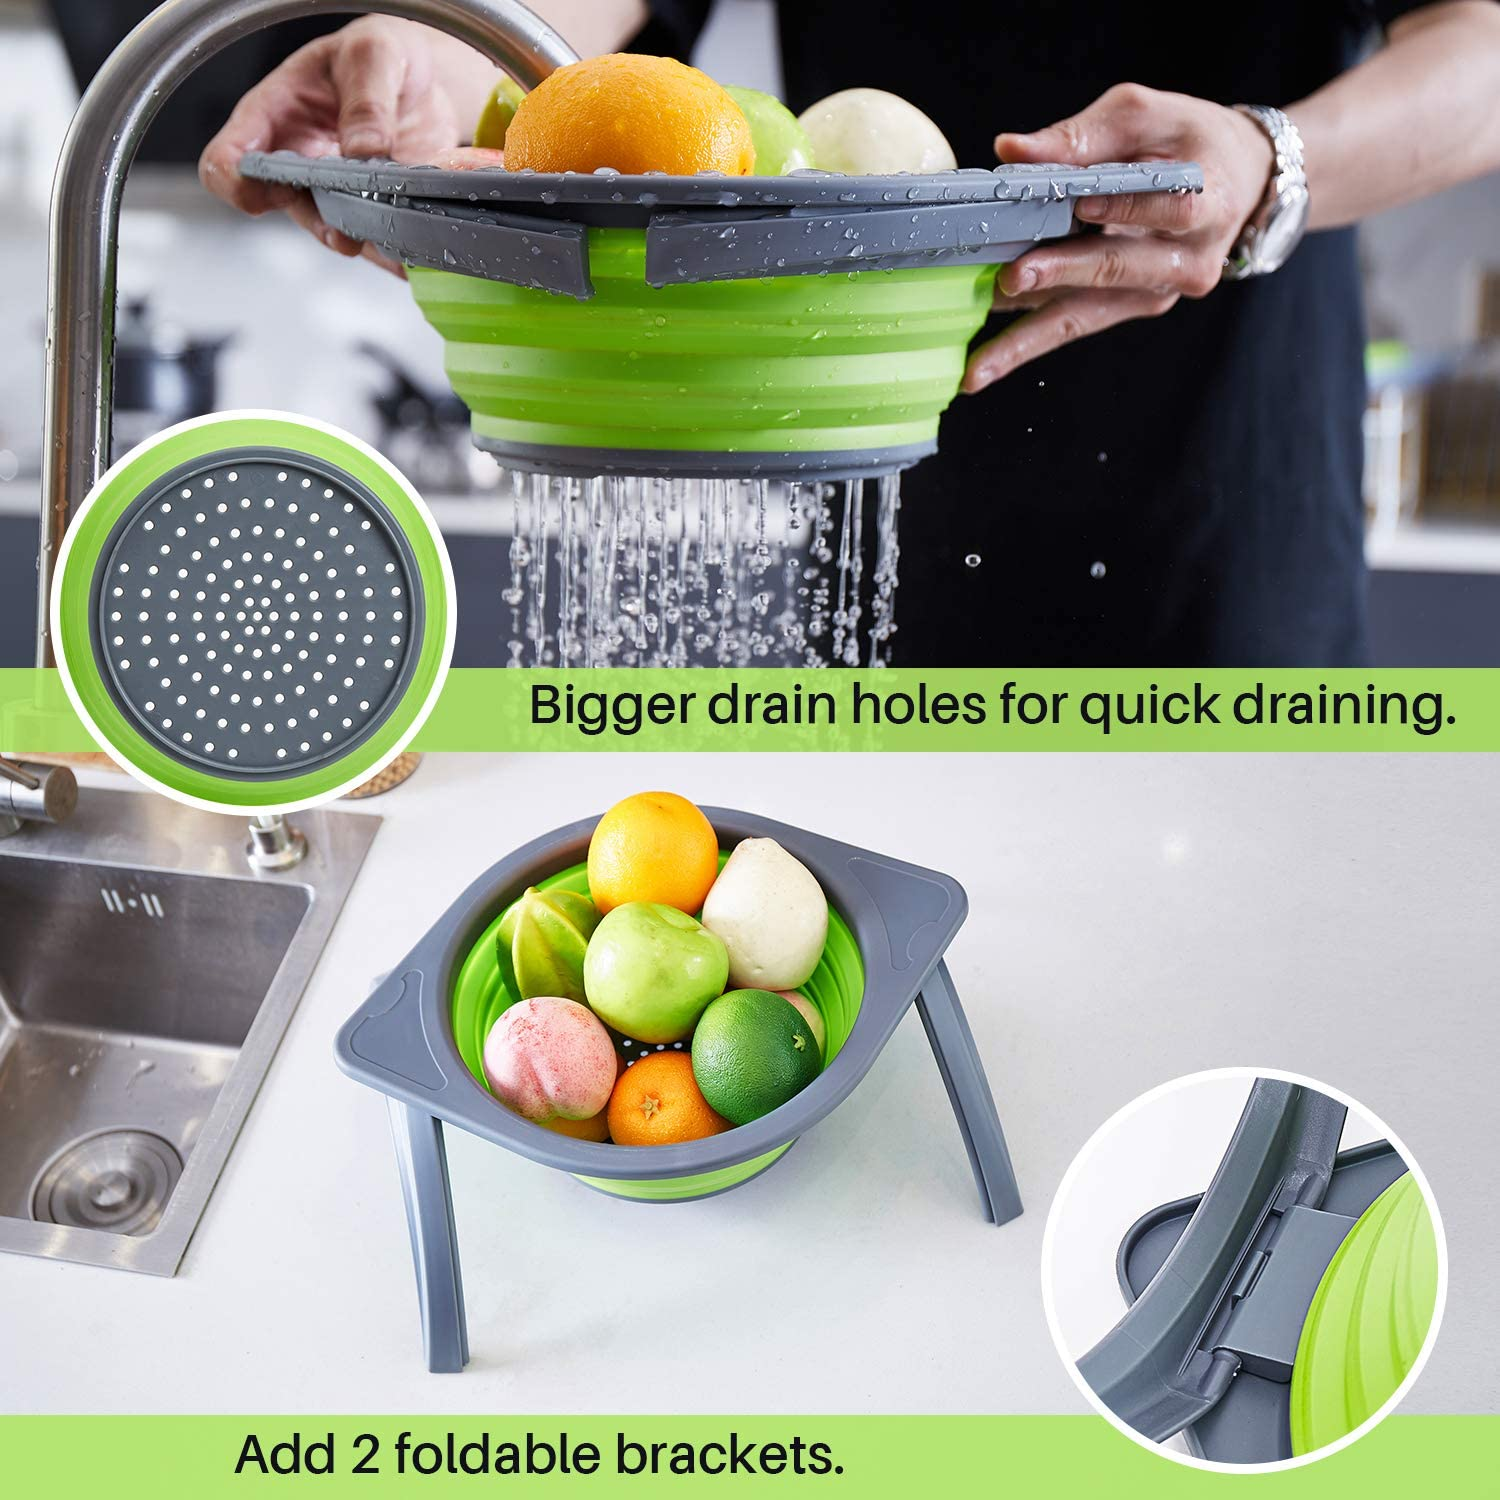 Multifunction Chopping Board with Colander,3 in 1 Multifunction Storage Basket BBQ Glotoch Collapsible Cutting Board with 2 Colander Picnic Chopping/&Slicing Board for Camping Kitchen